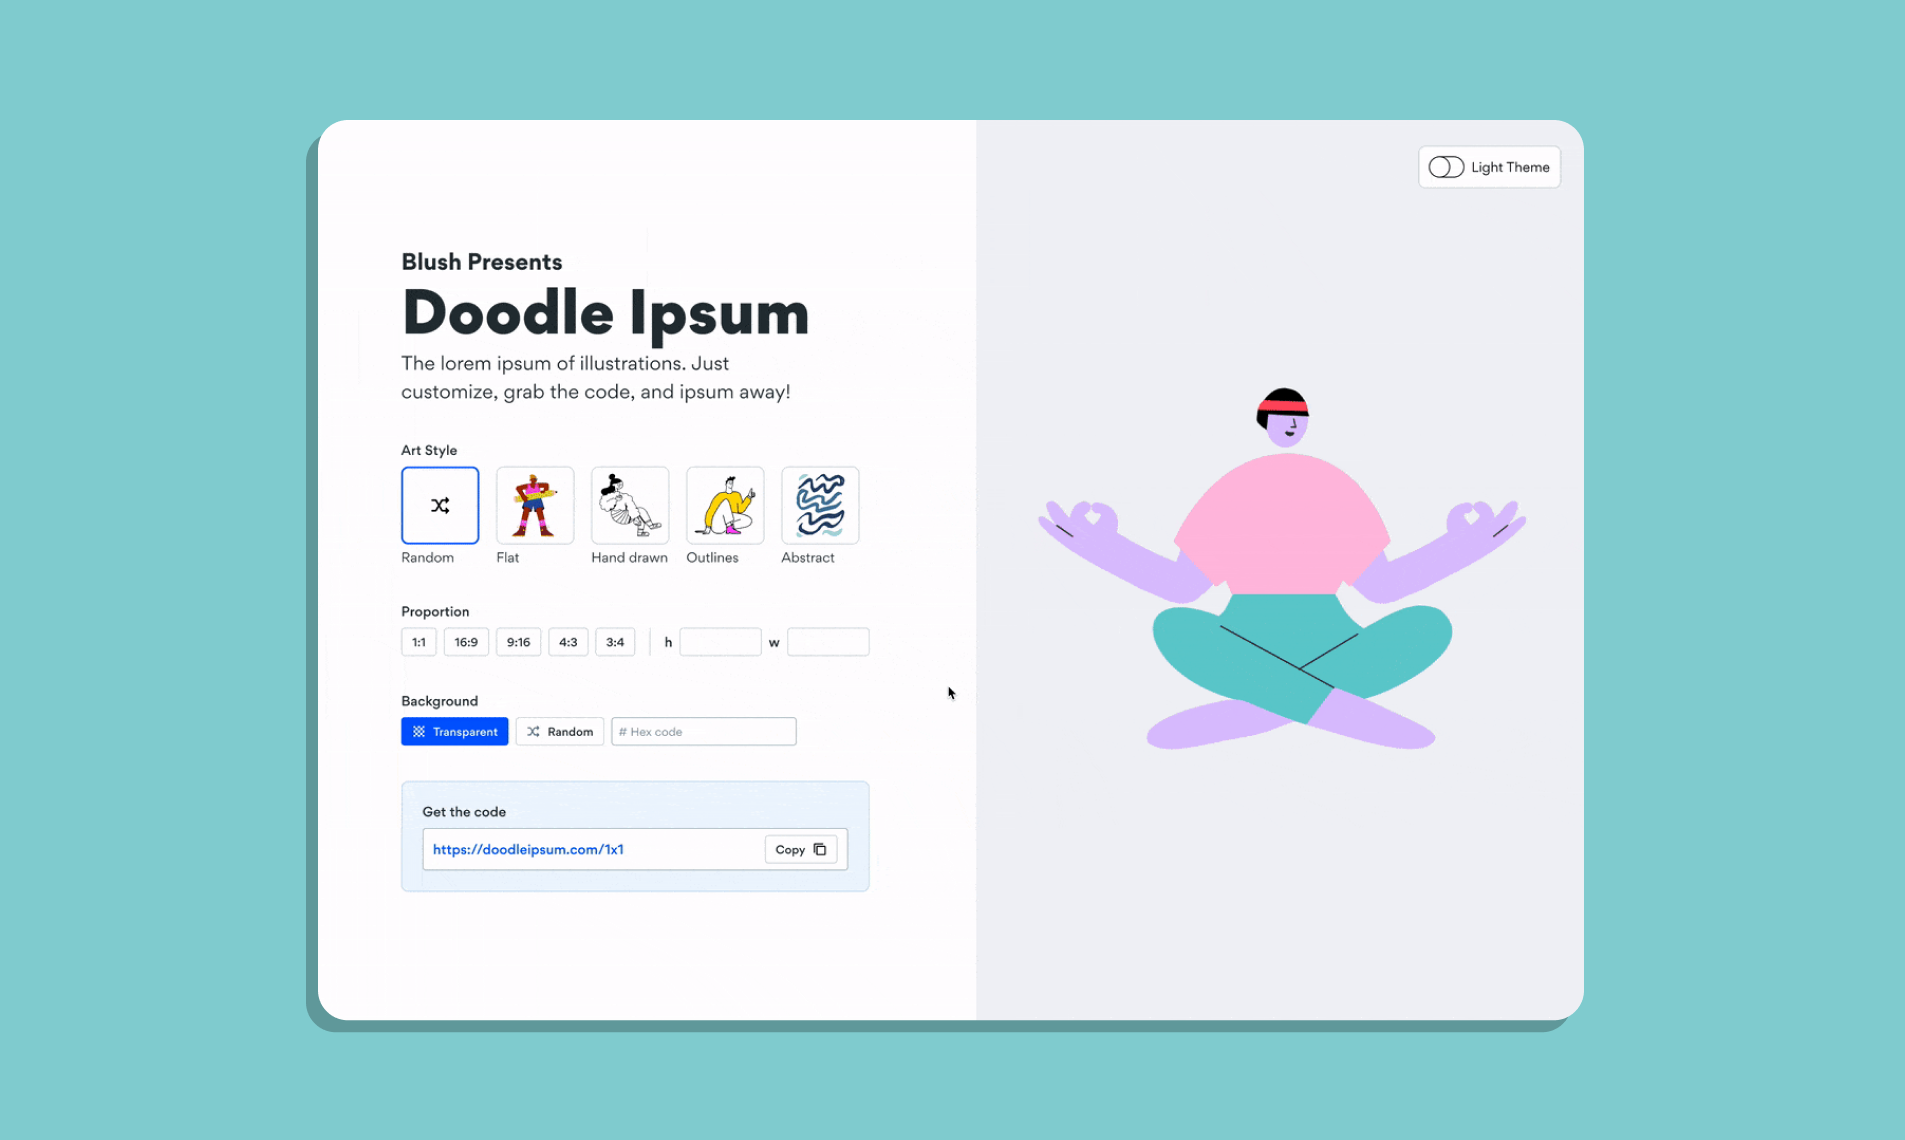 Blush presents Doodle Ipsum. An example of the website UI